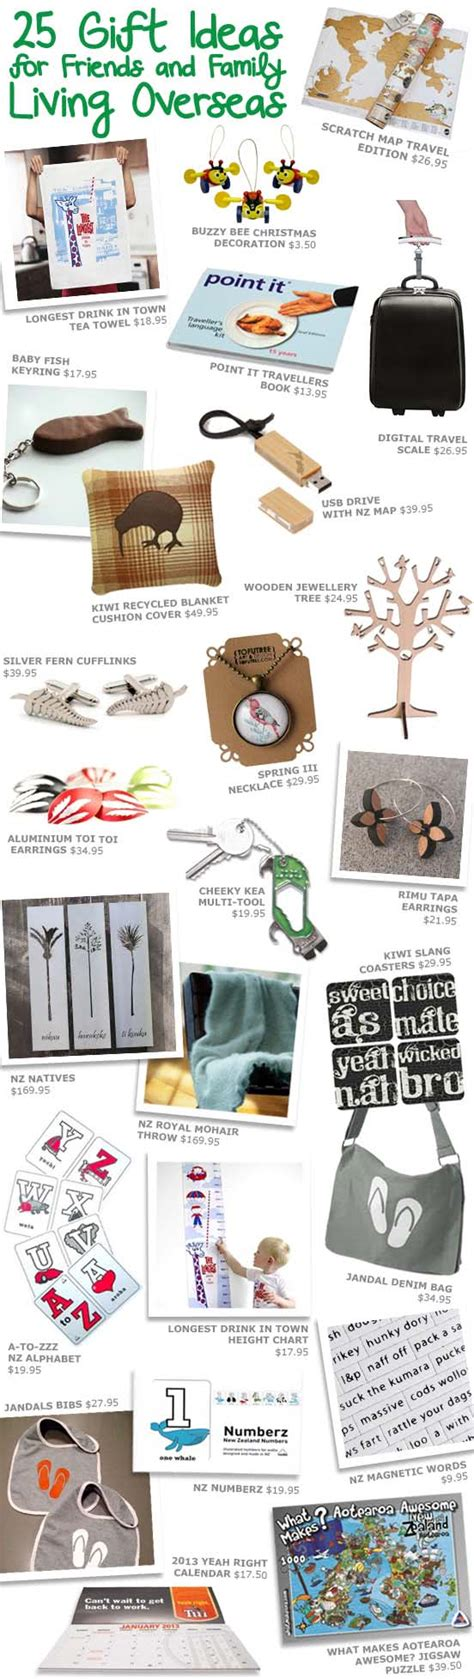 25 gift ideas blog 25 gift ideas for friends family living overseas